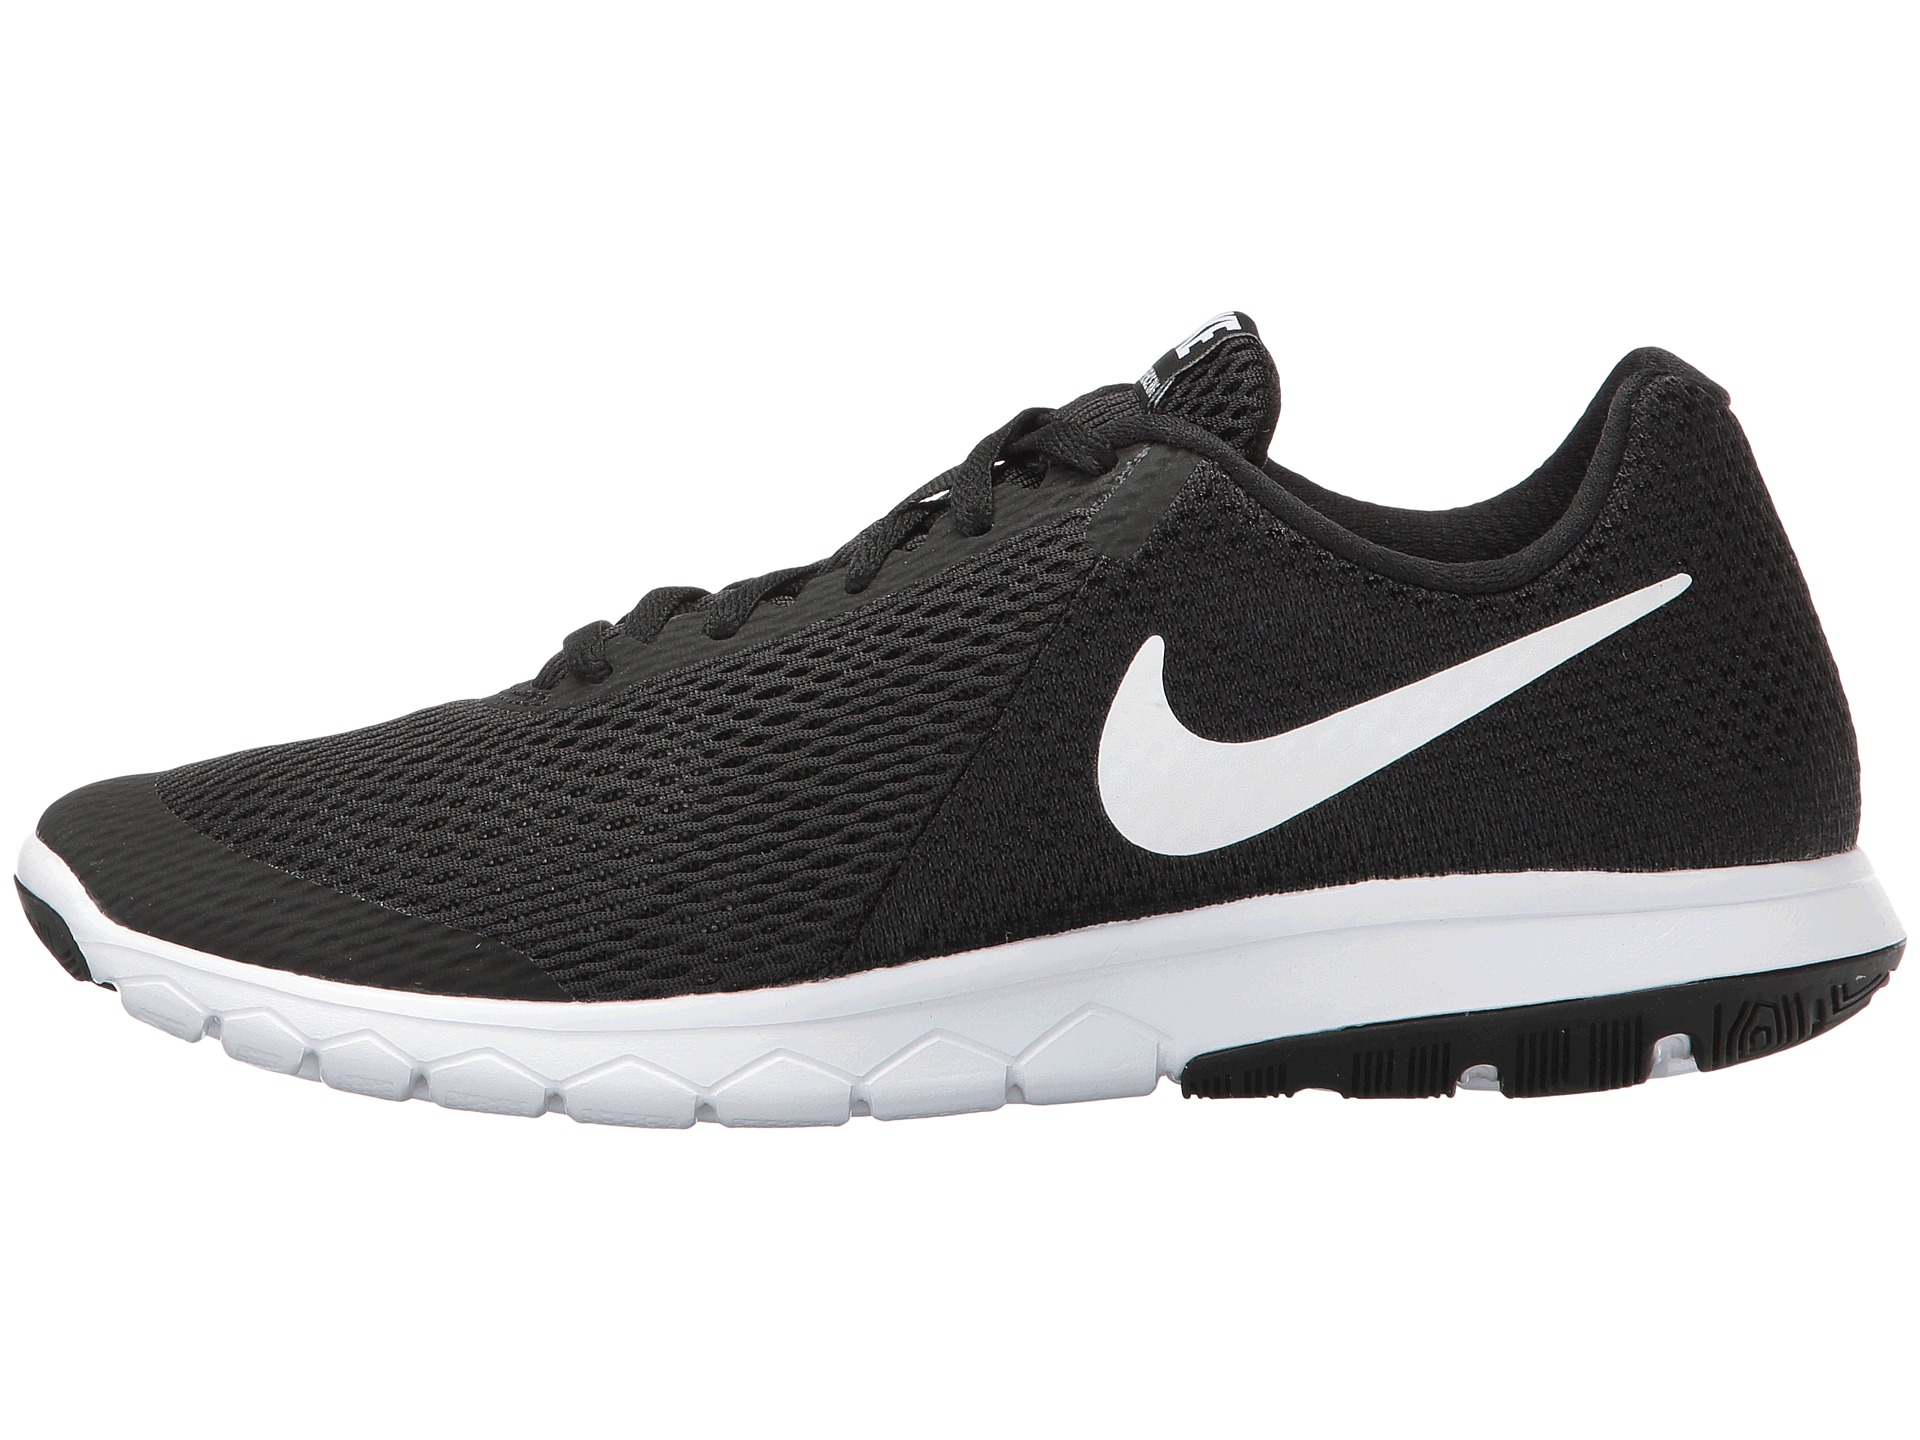 best sneakers caf0c 5a318 nike free 6.0 v2 running shoes mens